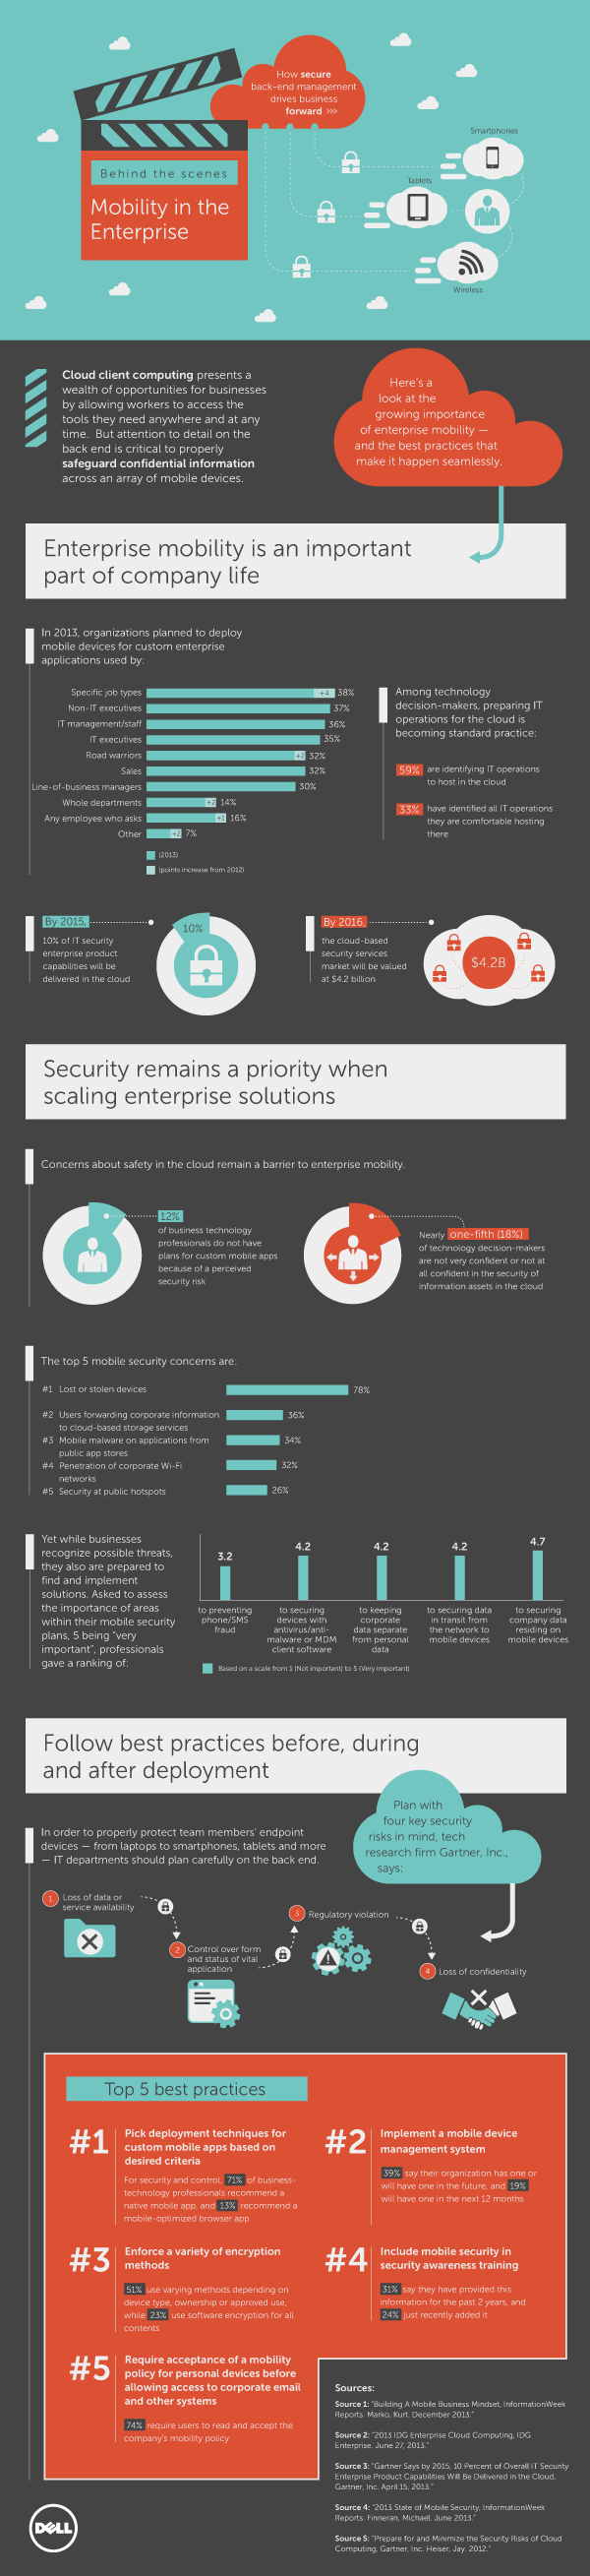 Infographic: Behind the Scenes - Mobility in the Enterprise